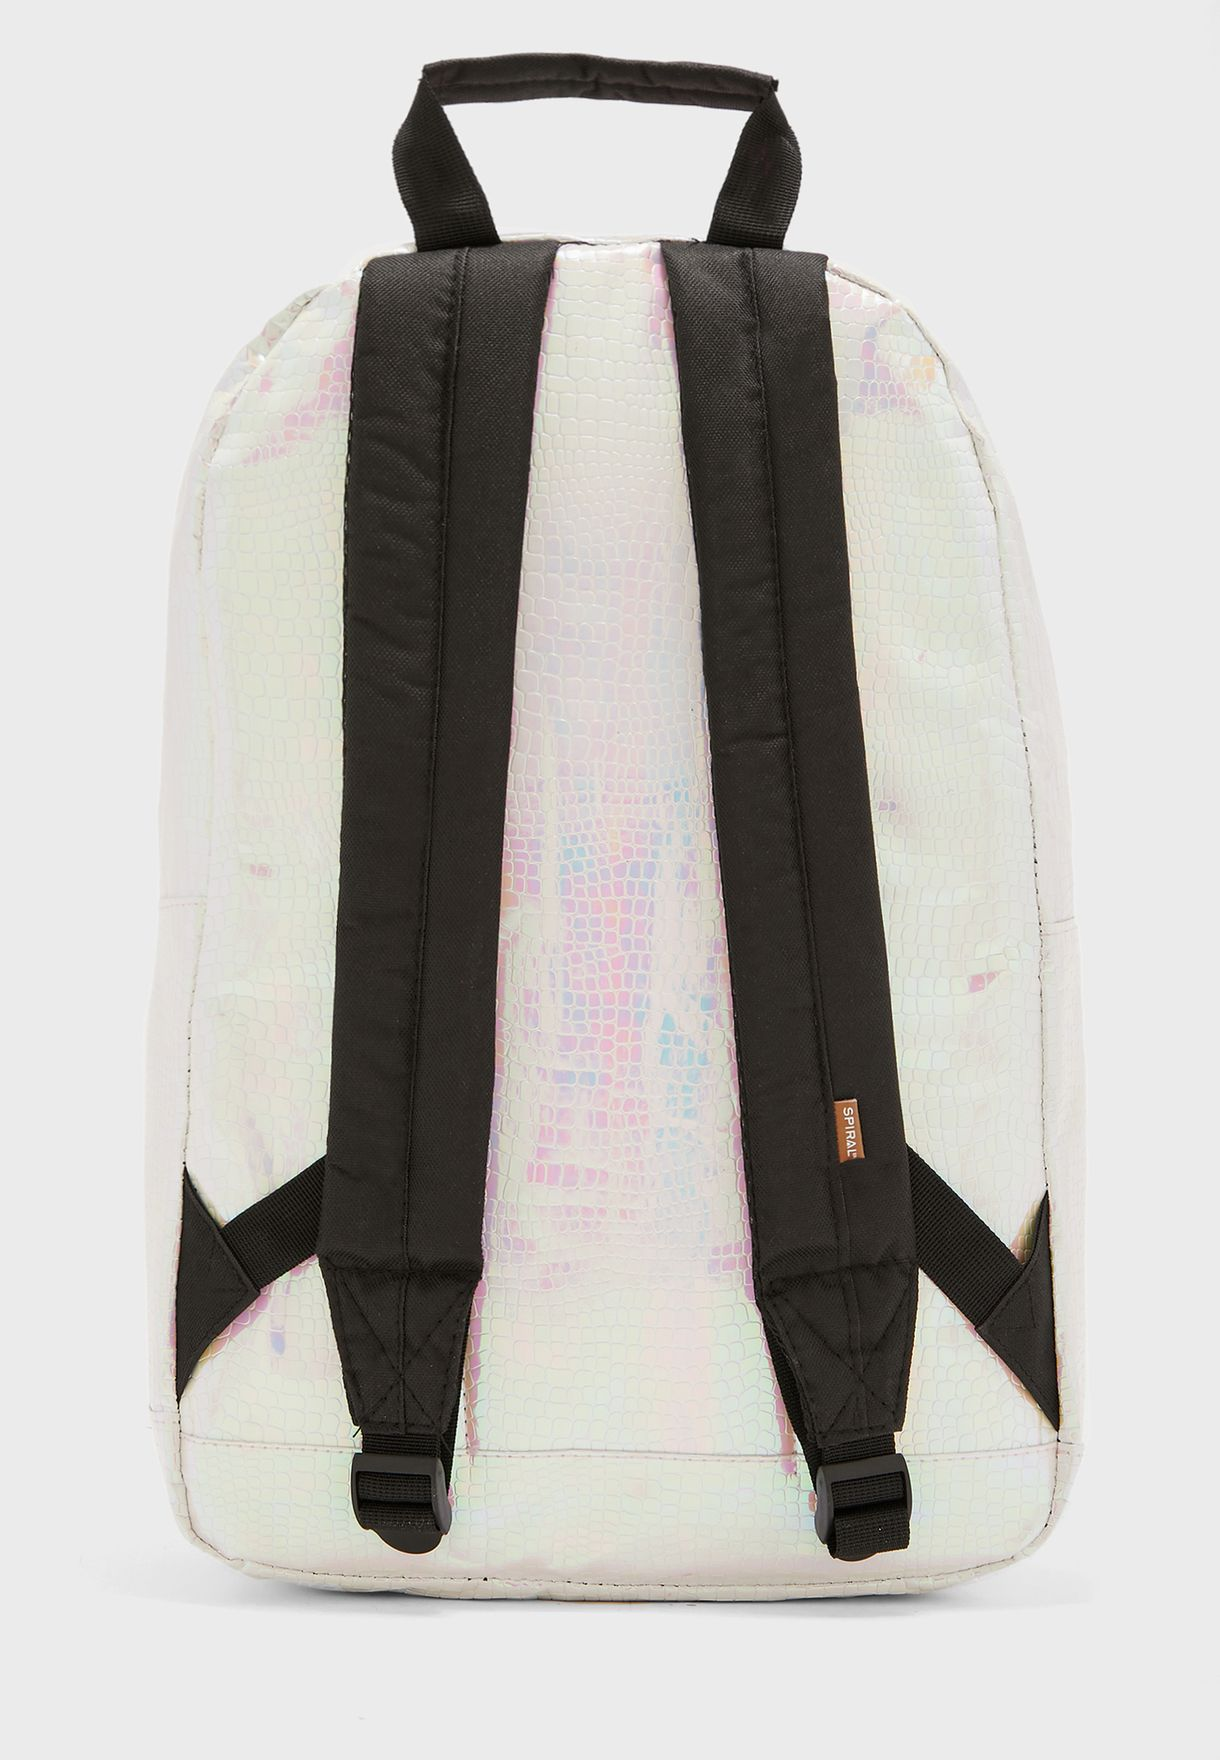 Iridescent Holographic Backpack